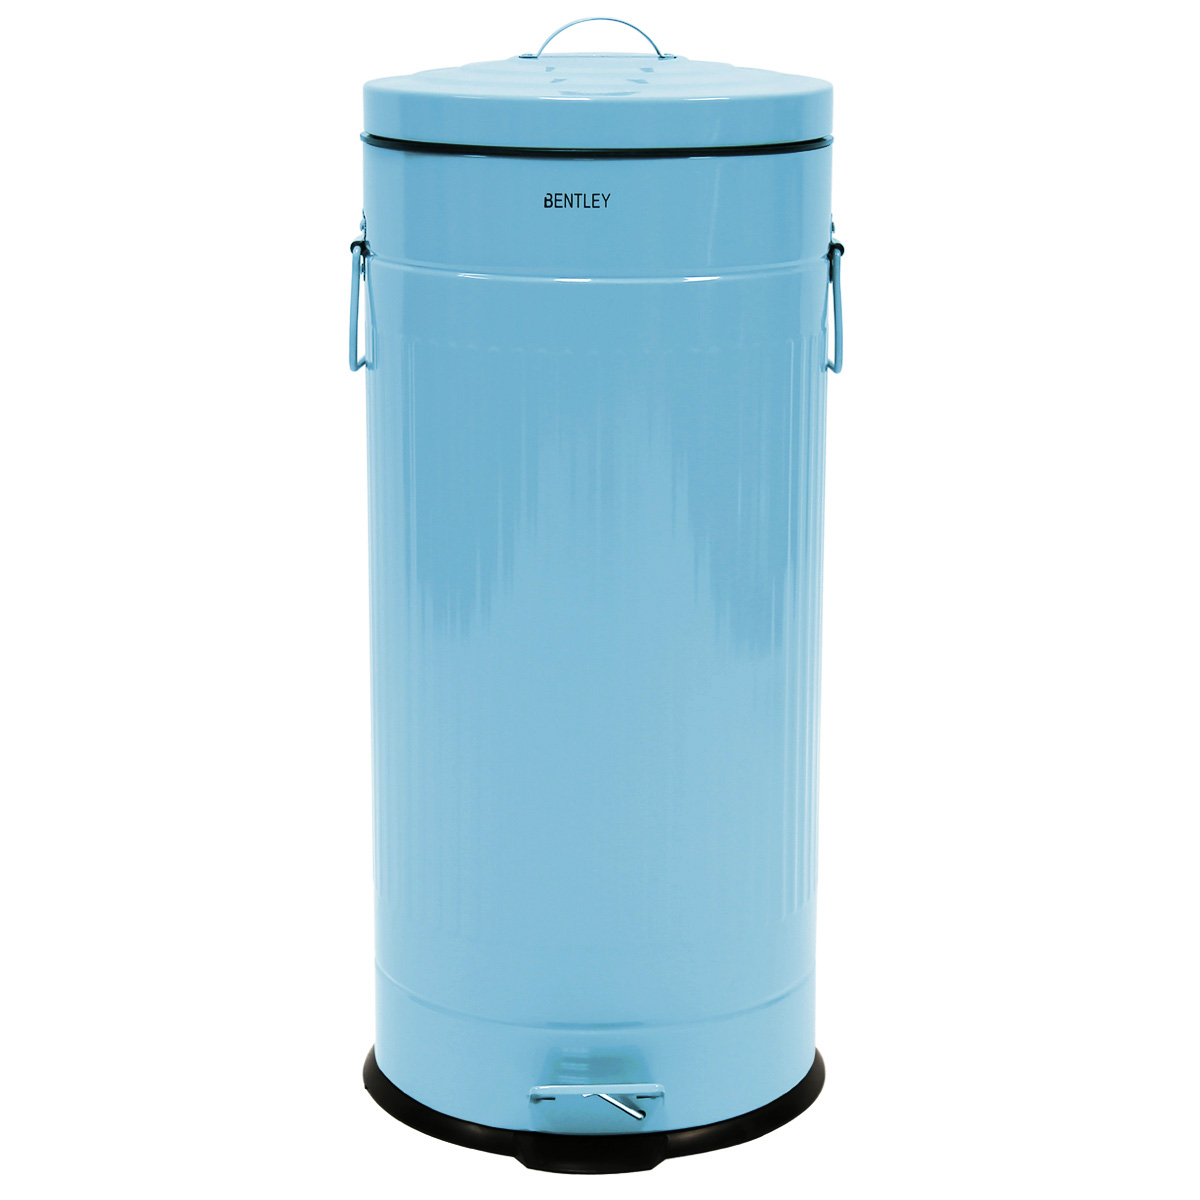 Charles Bentley 30L Retro Steel Waste Rubbish Kitchen Pedal Bin ...